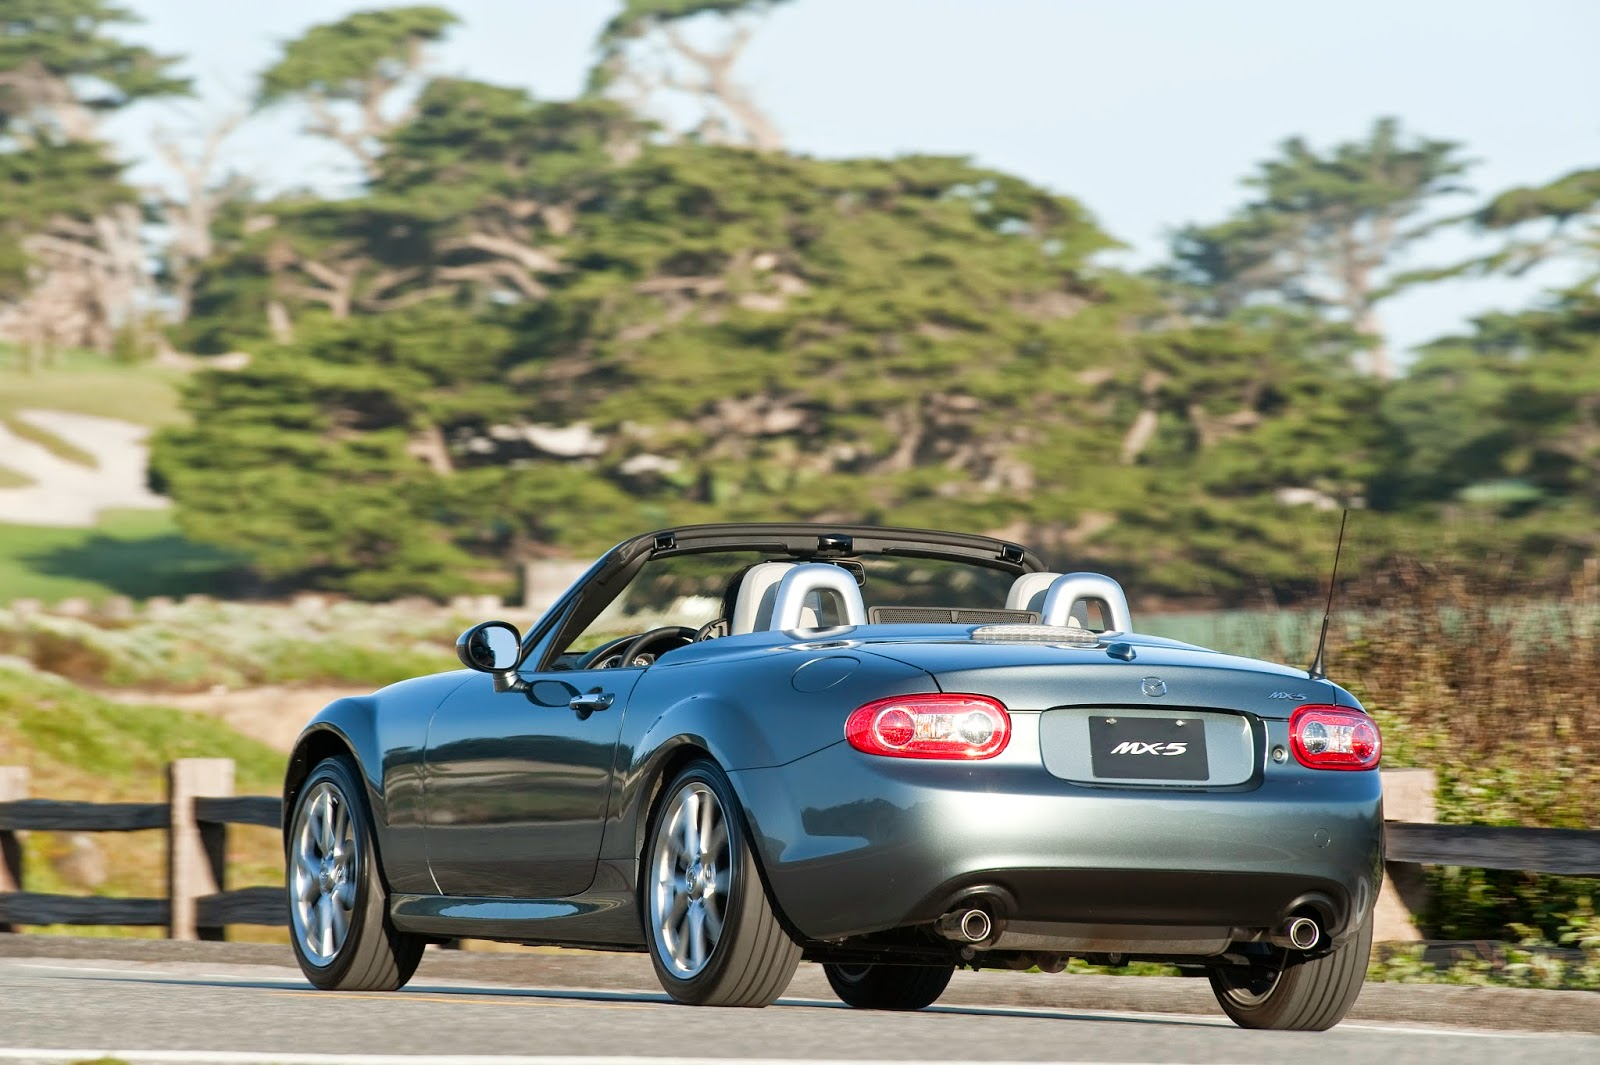 Rear 3/4 view of 2015 Mazda MX-5 Miata